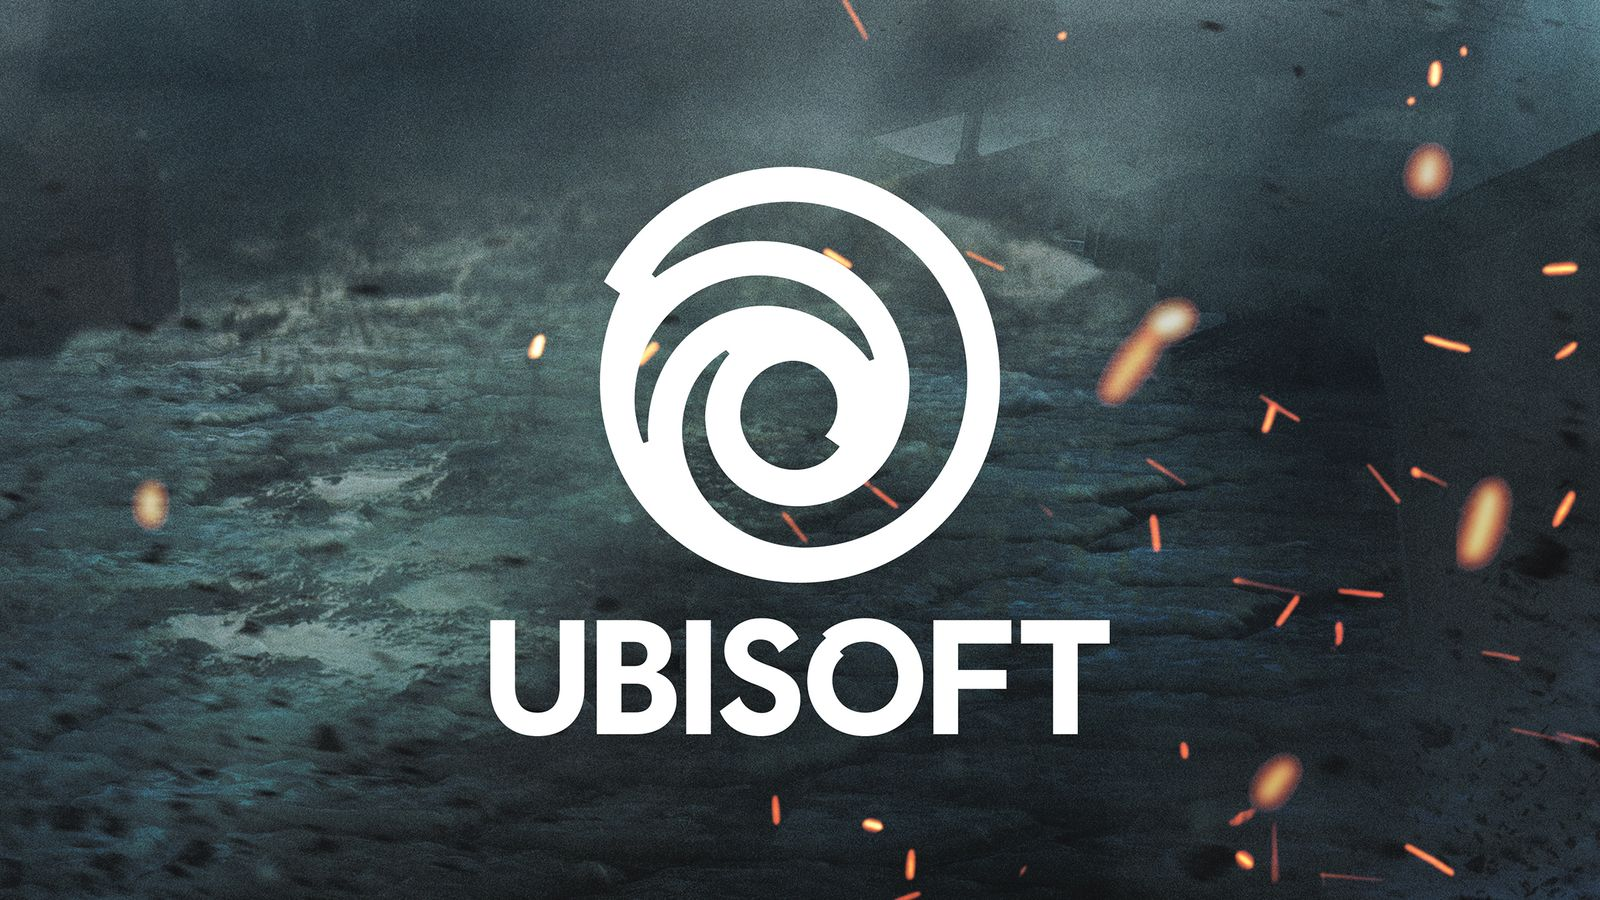 СМИ: Ubisoft заморозила неизвестную игру после провала Ghost Recon: Breakpoint